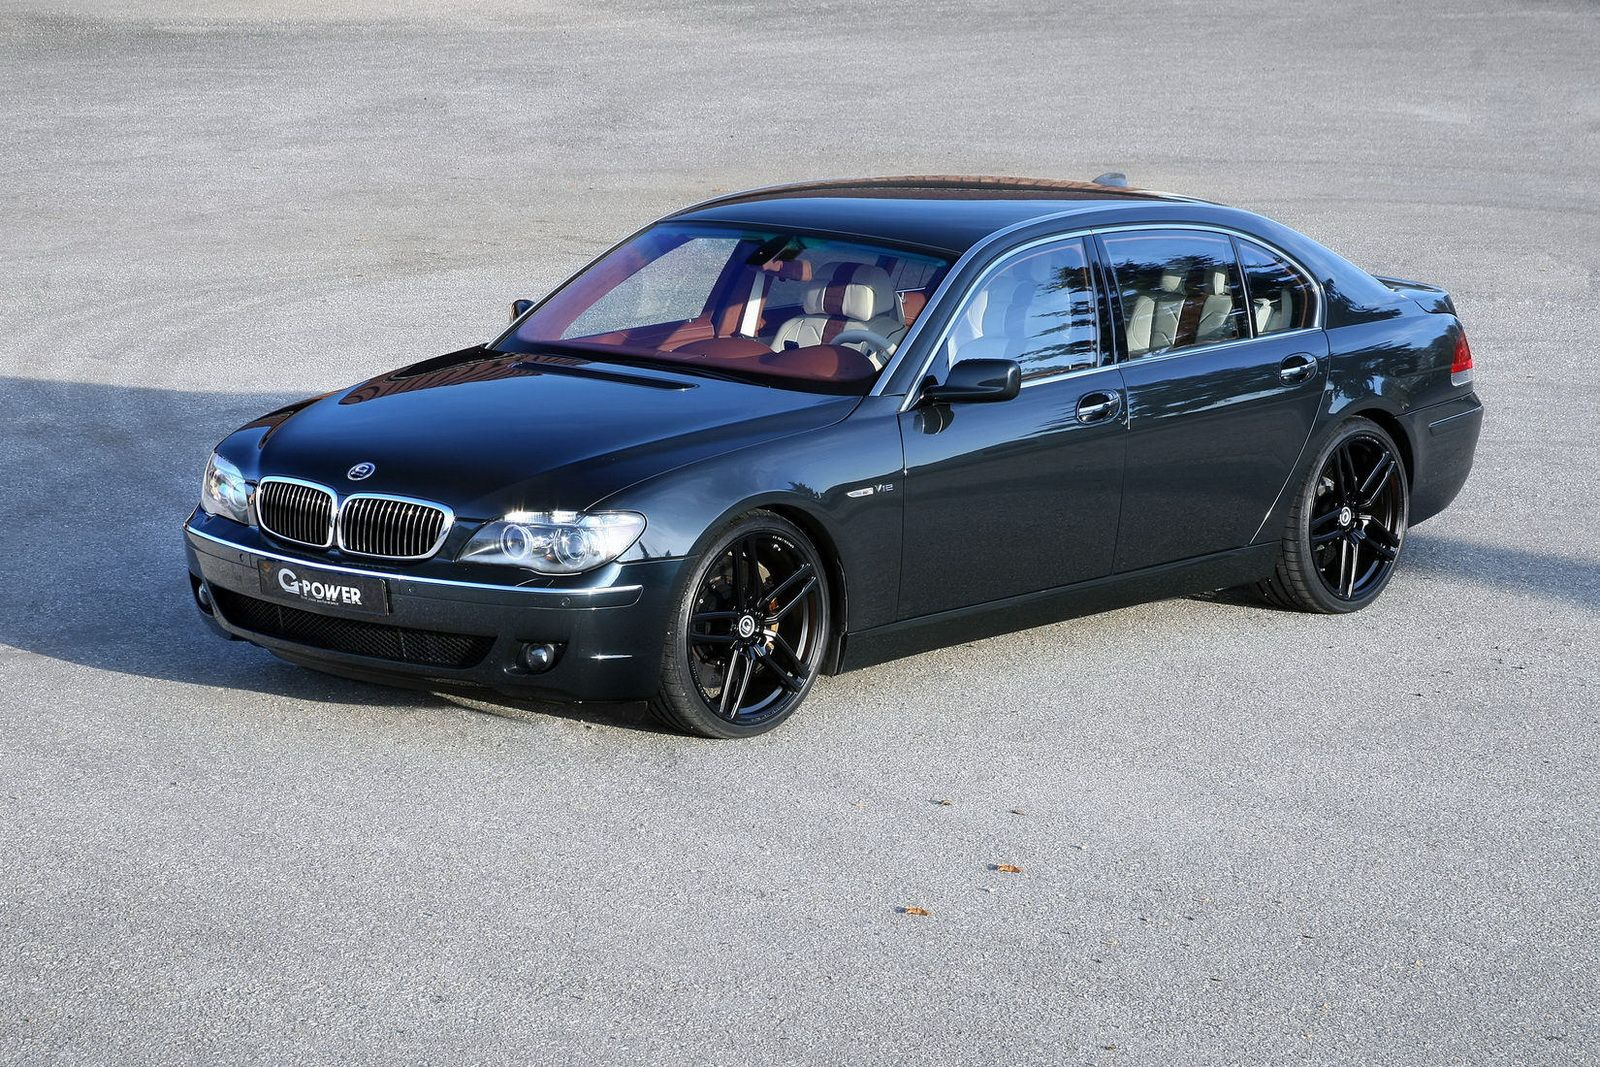 g power customizes bmw 7 series e65 39 s cabin bmw cars and car engine. Black Bedroom Furniture Sets. Home Design Ideas